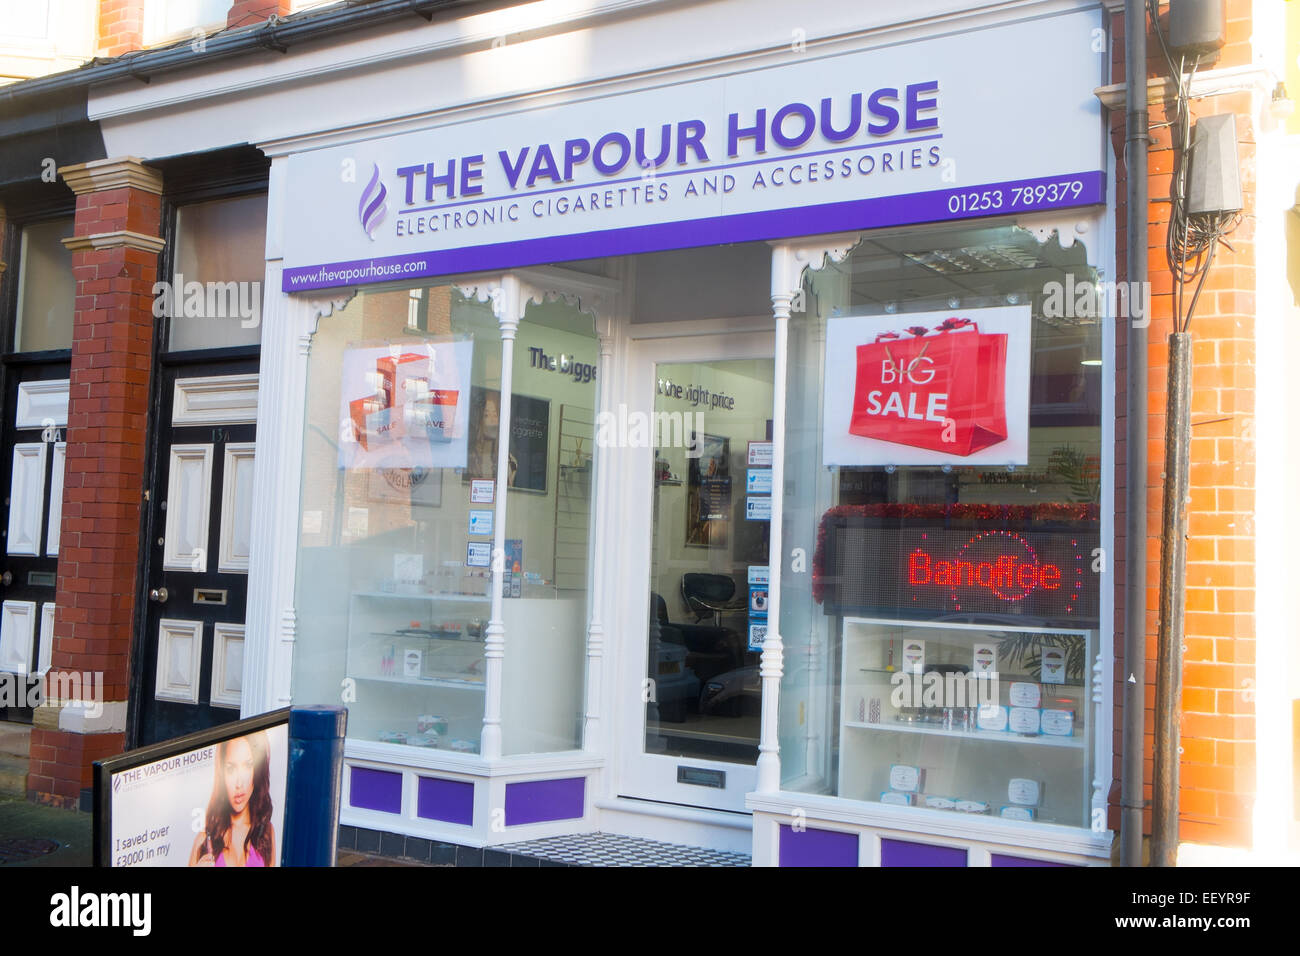 Shop Online E-cigarette Electronic Cigarette And Vaping Shop In Lytham St Annes